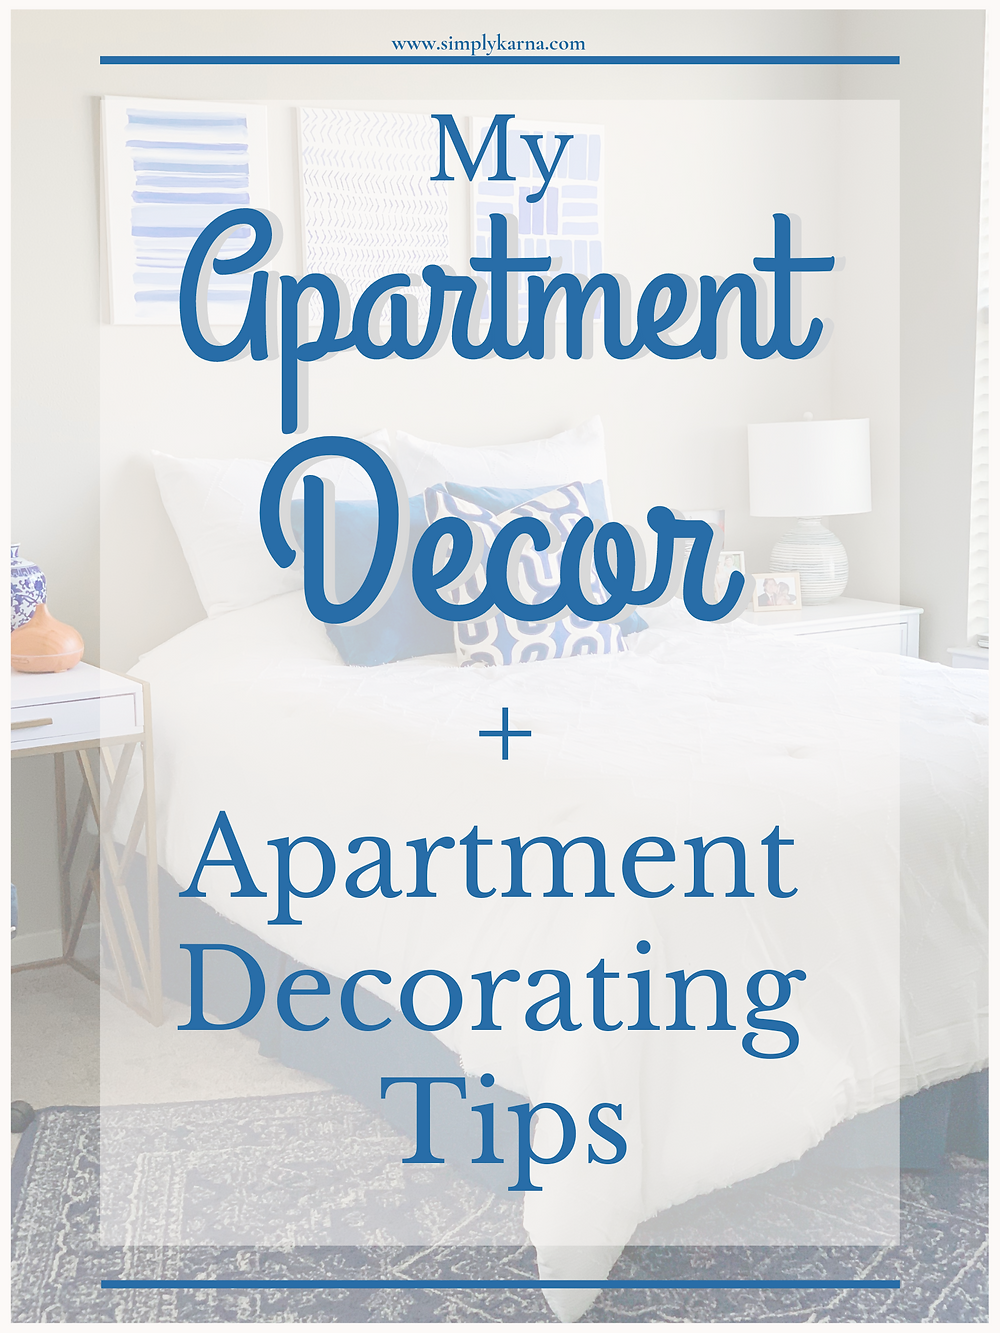 apartment decor, home decor, decorating tips